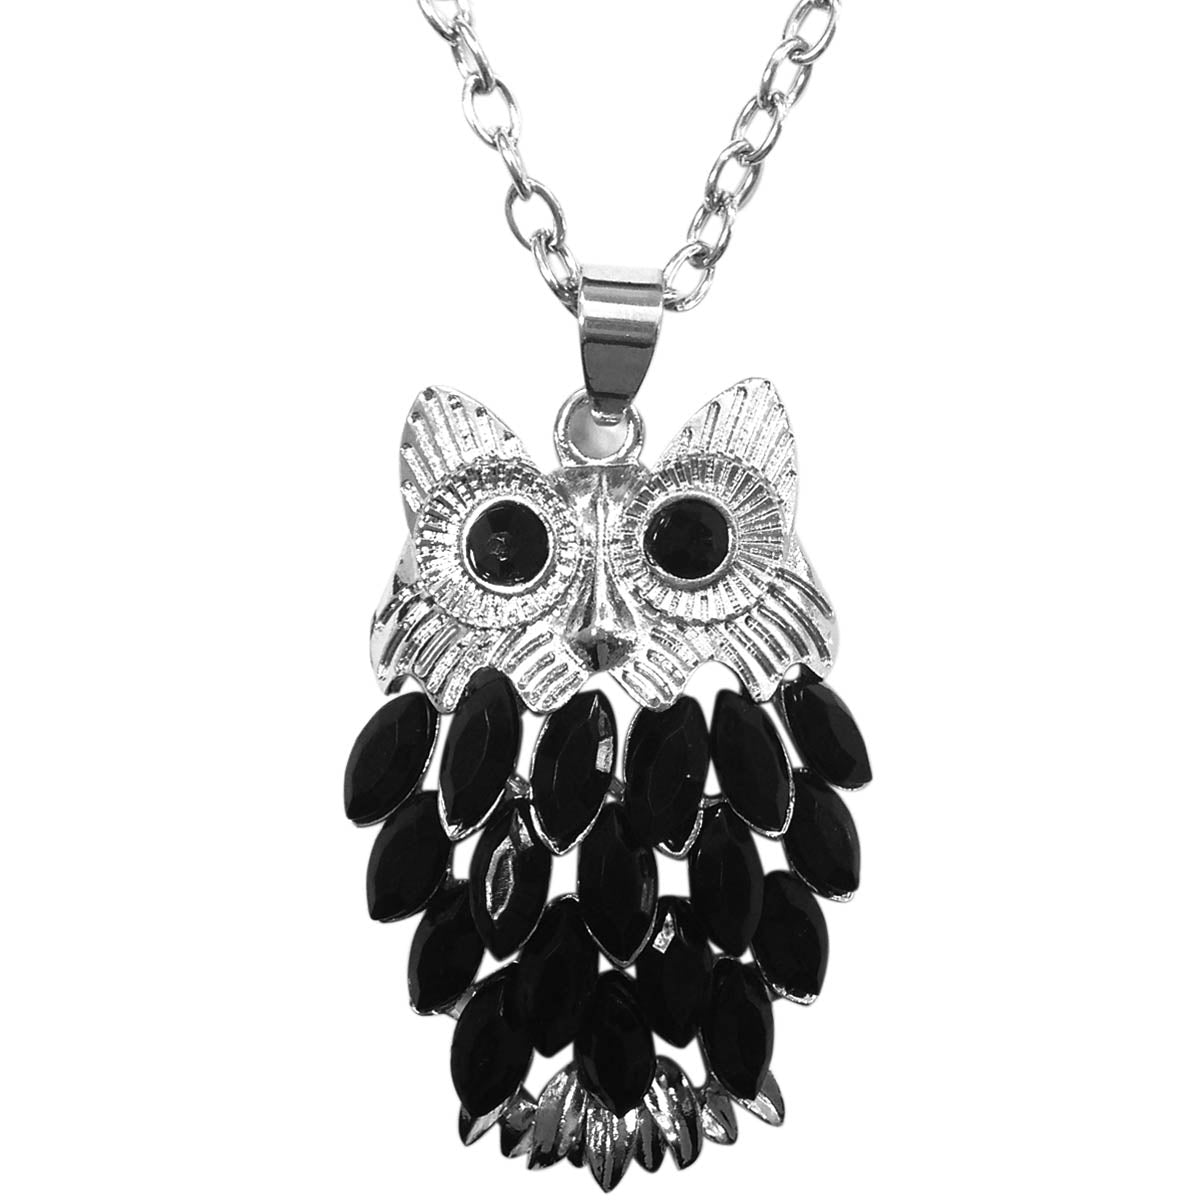 Wrapables Stylish Crystal Feather Owl Pendant Necklace